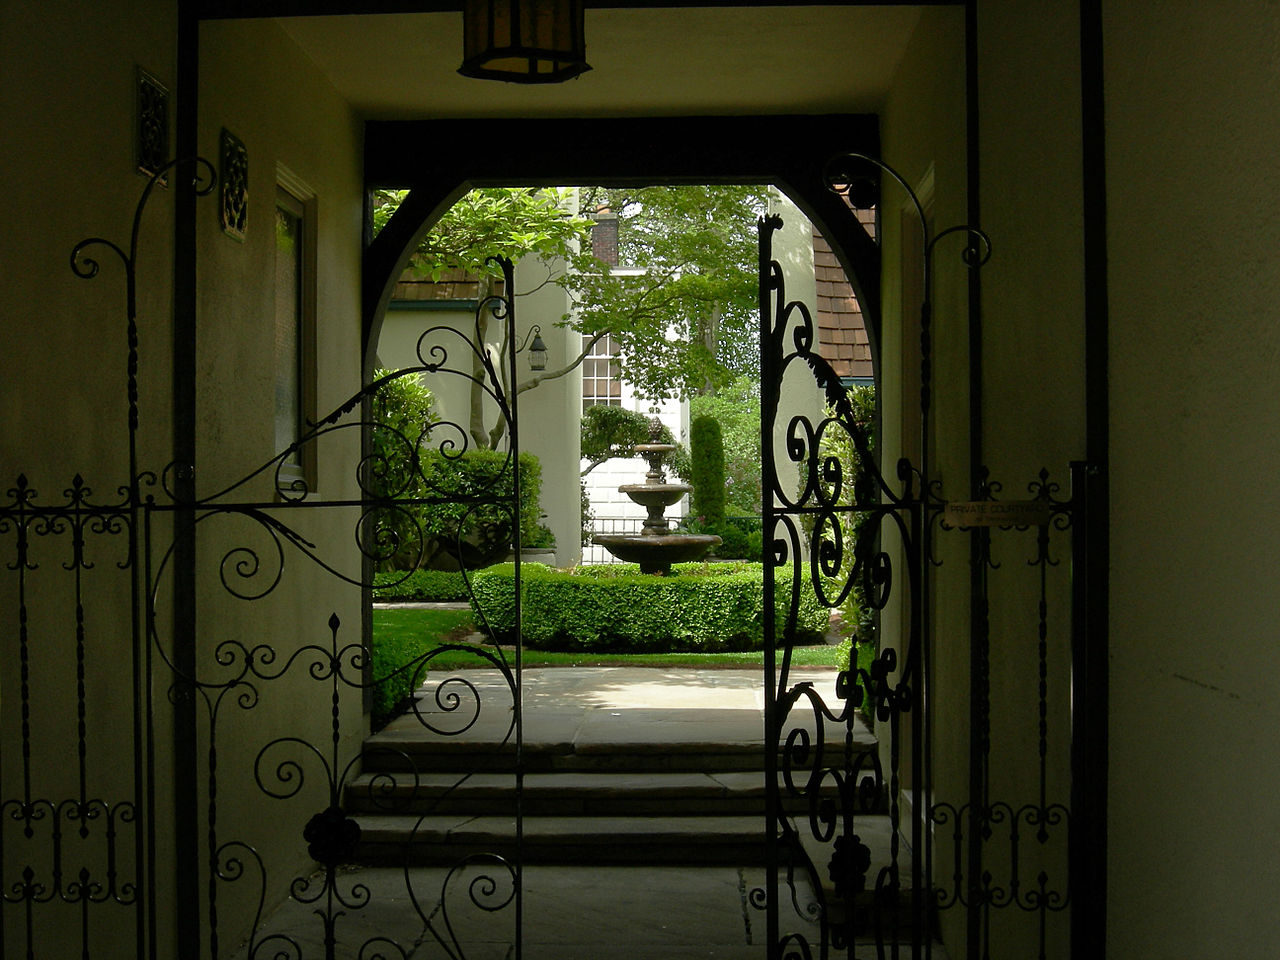 """The Loveless Building scale is outstanding along the sidewalk, as is the material textures, and expression of uses. The glimpse of the courtyard seen passing by the gate is very compelling, followed by the traditional sequence of compression of view in the tunnel, and expansion into the garden, and the tree canopy overhead."""